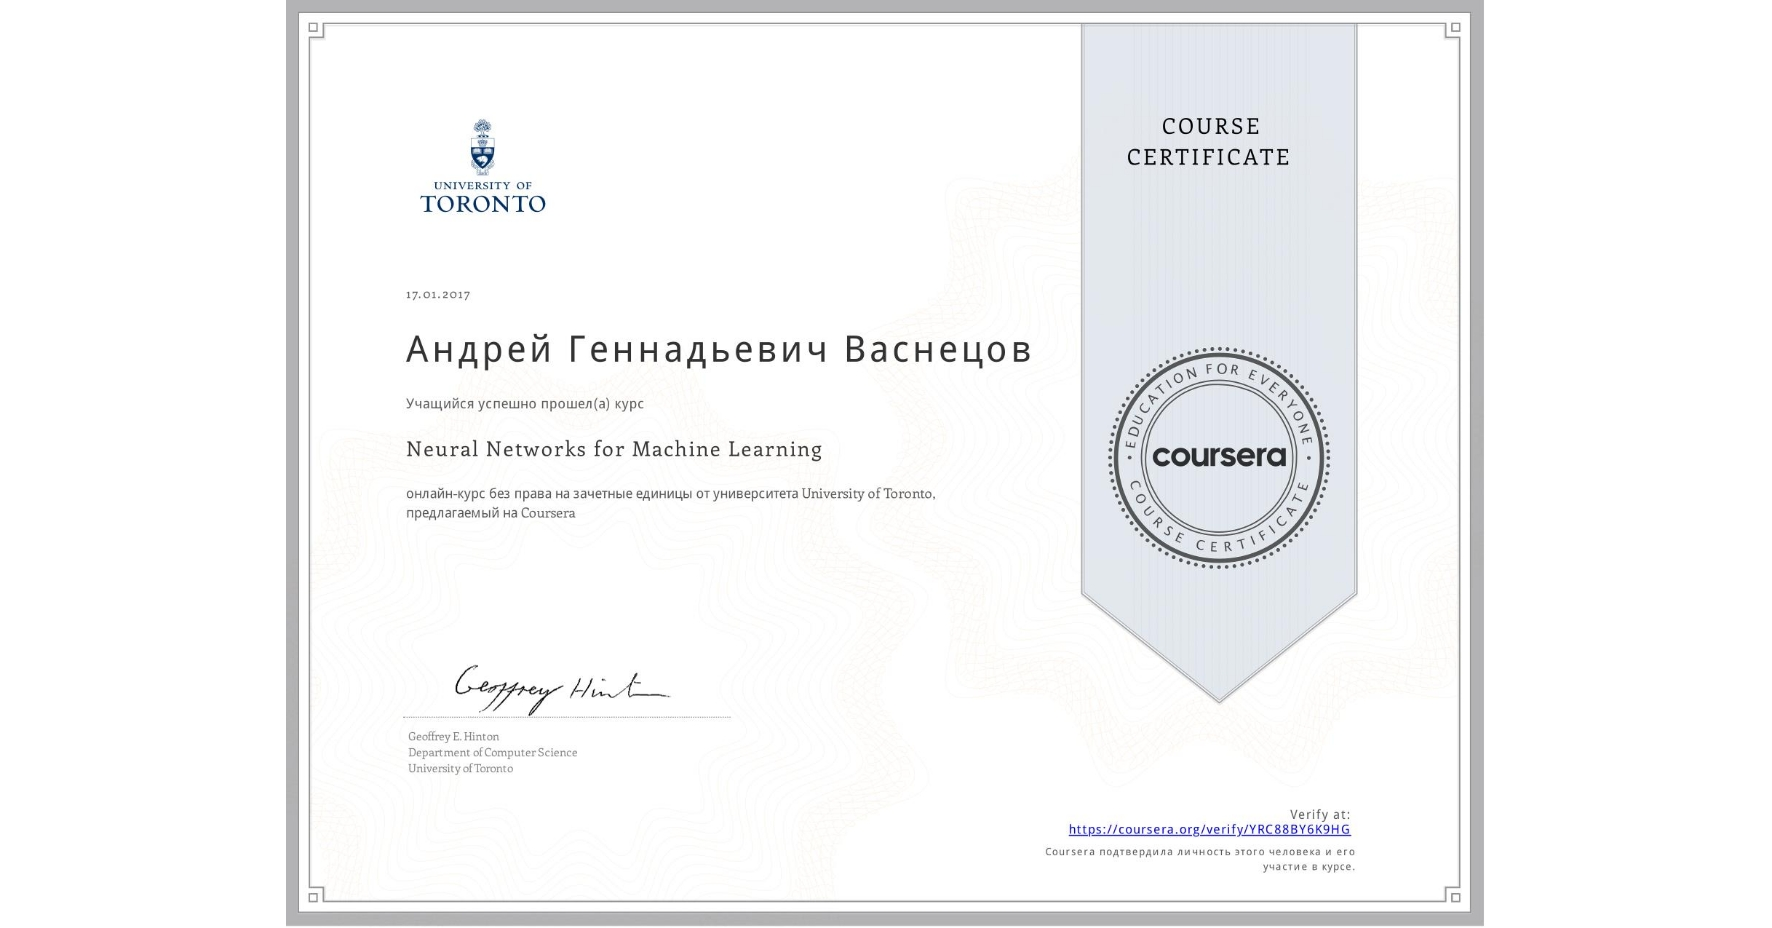 View certificate for Андрей Геннадьевич Васнецов, Neural Networks for Machine Learning, an online non-credit course authorized by University of Toronto and offered through Coursera